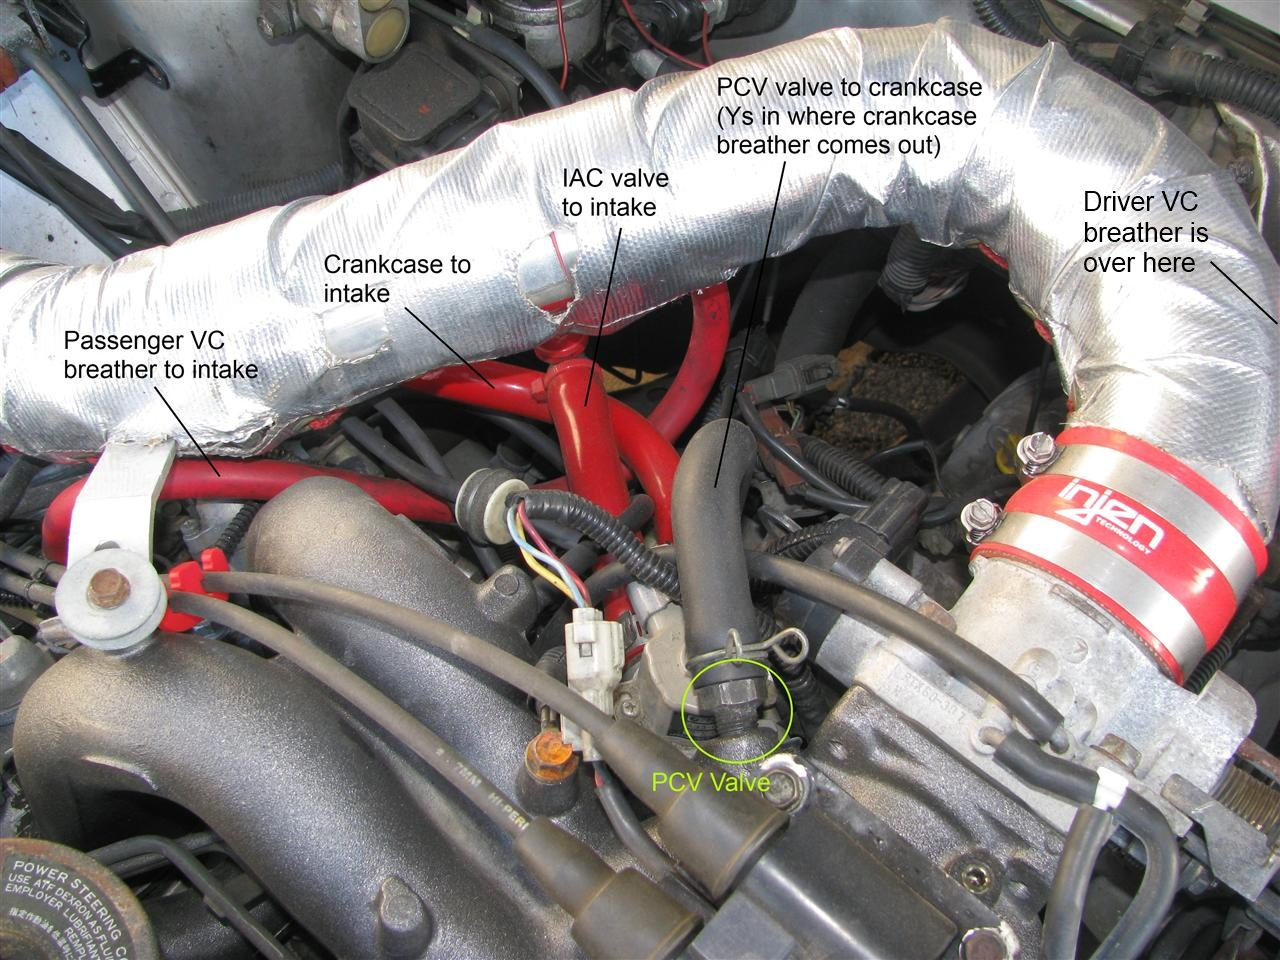 Why Do Na Cars Even Have Pcv Valves Page 2 Nasioc Subaru Boxer 4 Engine Fwd Trans Diagram So Im Pretty Good On How The Operates But Confused About Purpose Of Extra Hose That Runs From Top Block Crankcase To